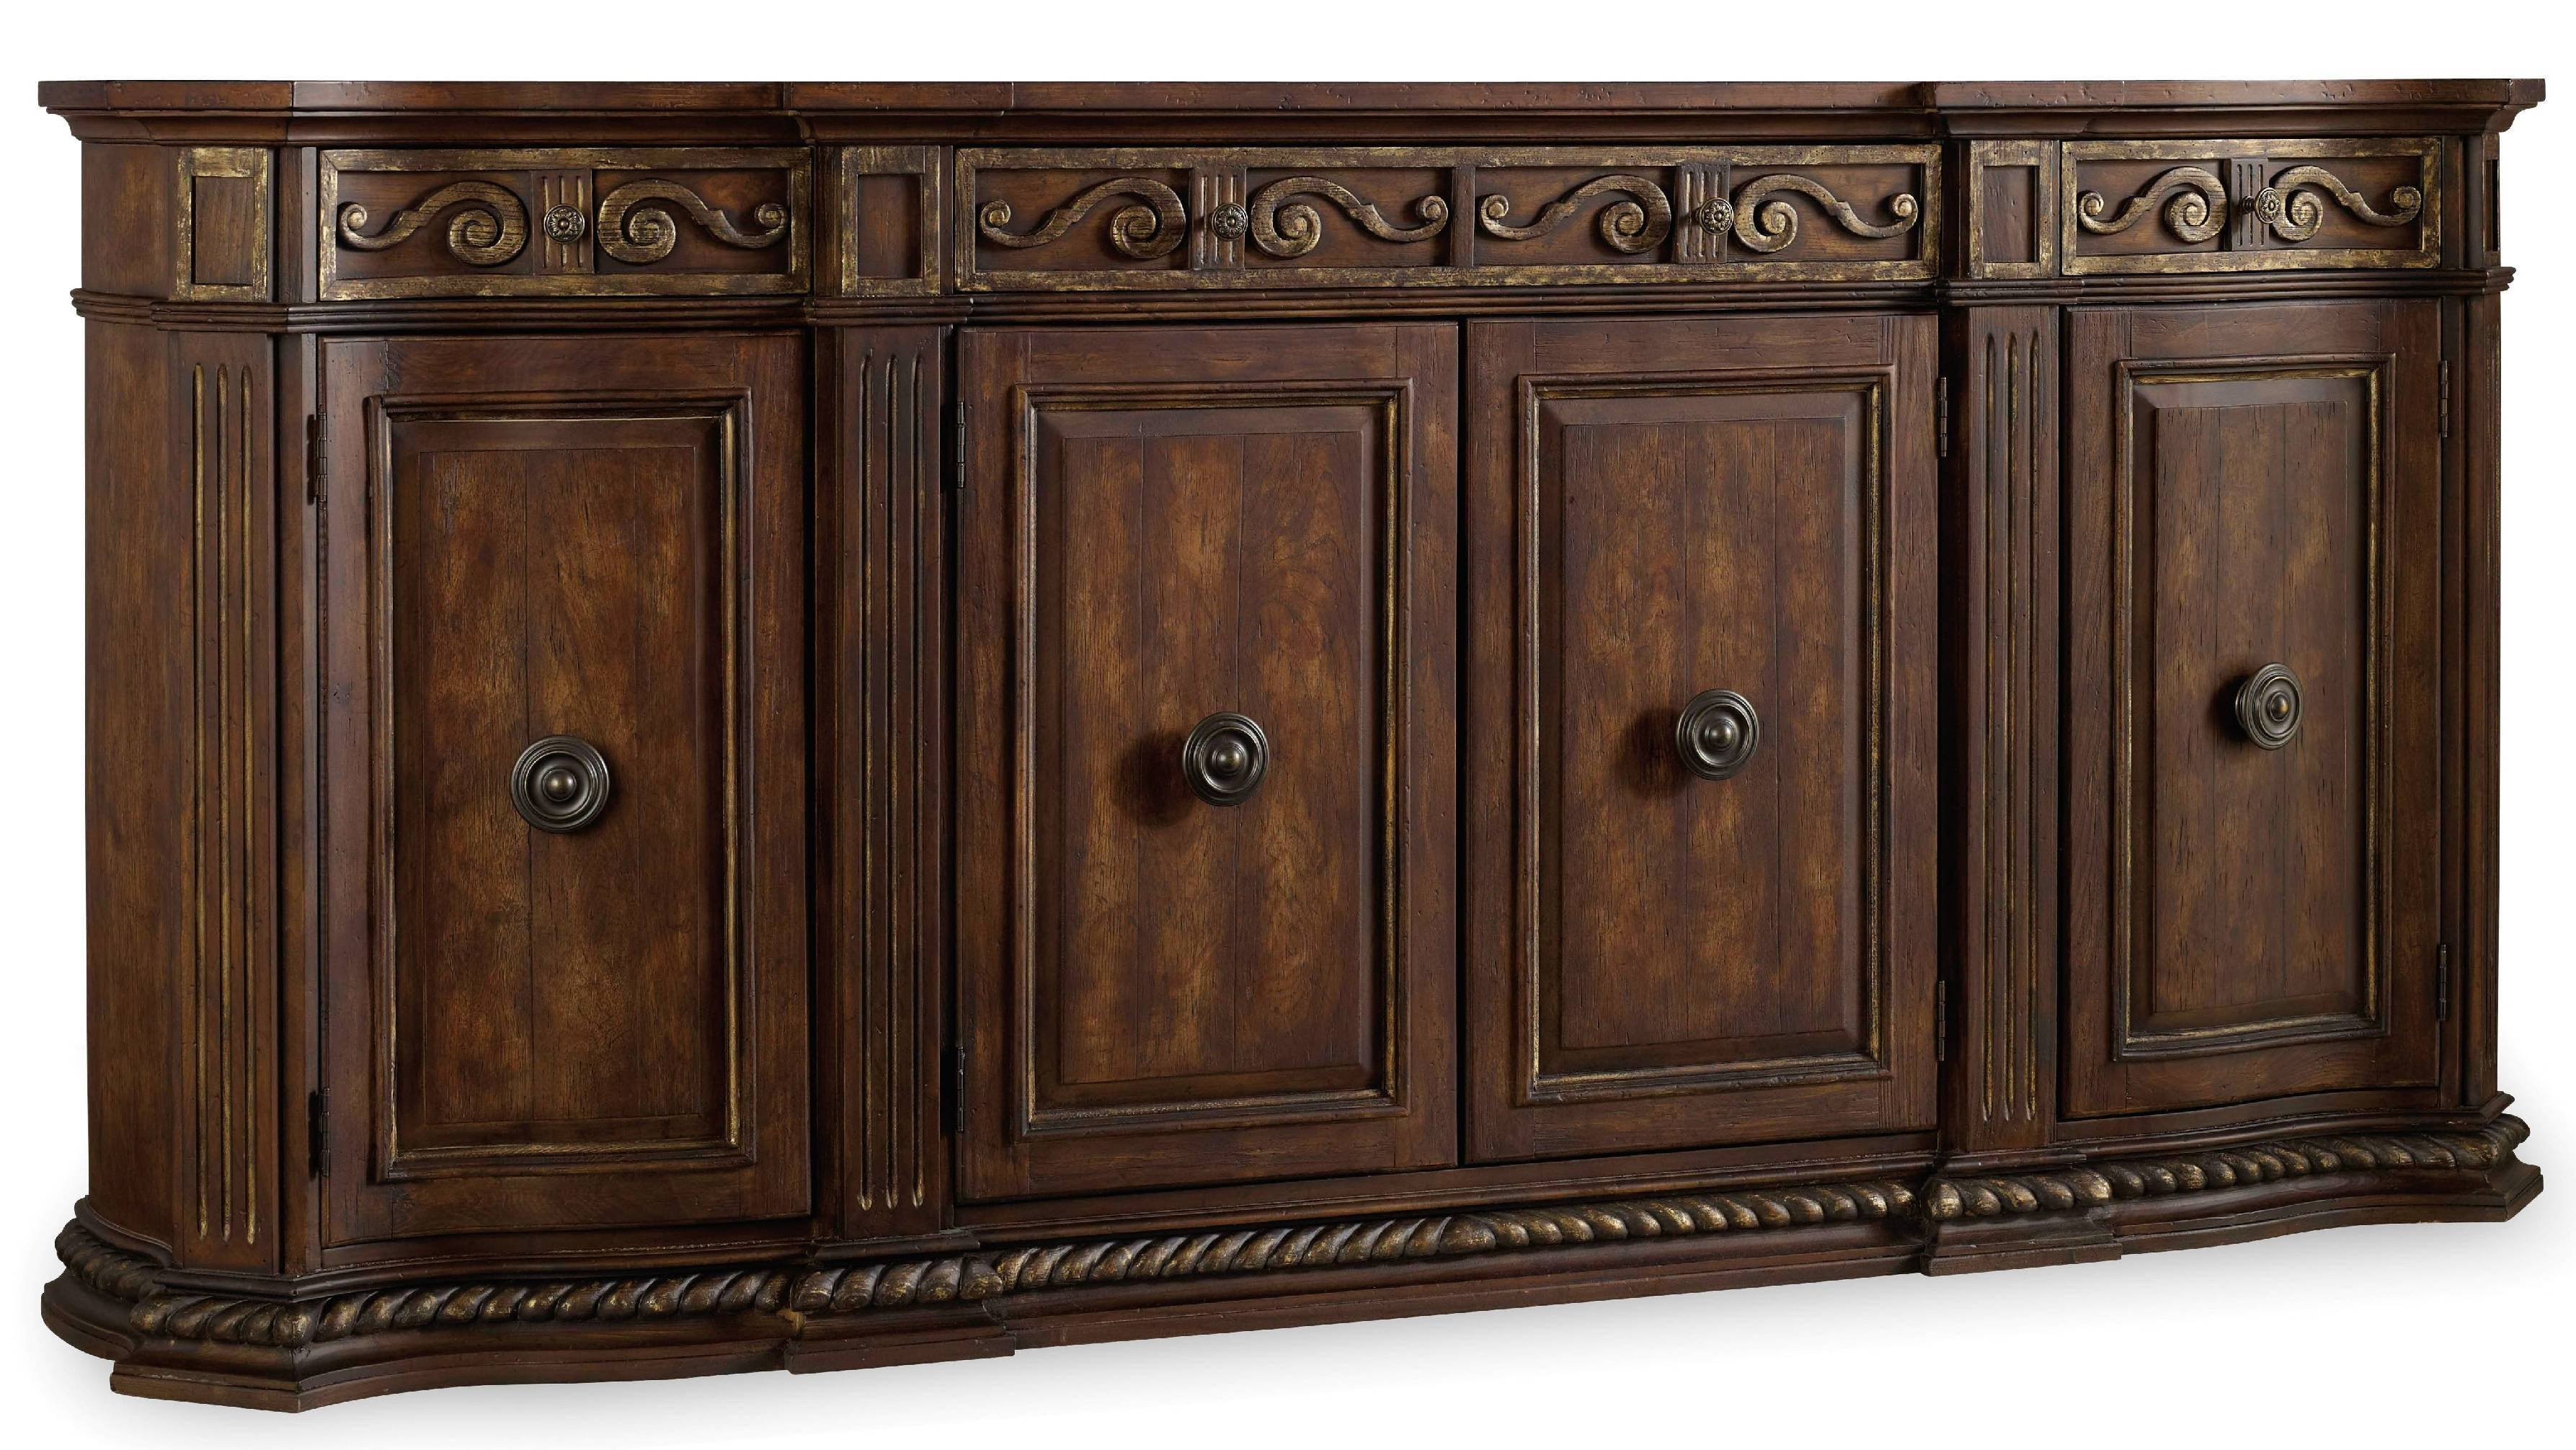 Impressive Decoration Dining Room Credenza Fashionable Inspiration Within Sideboards For Dining Room (#6 of 20)